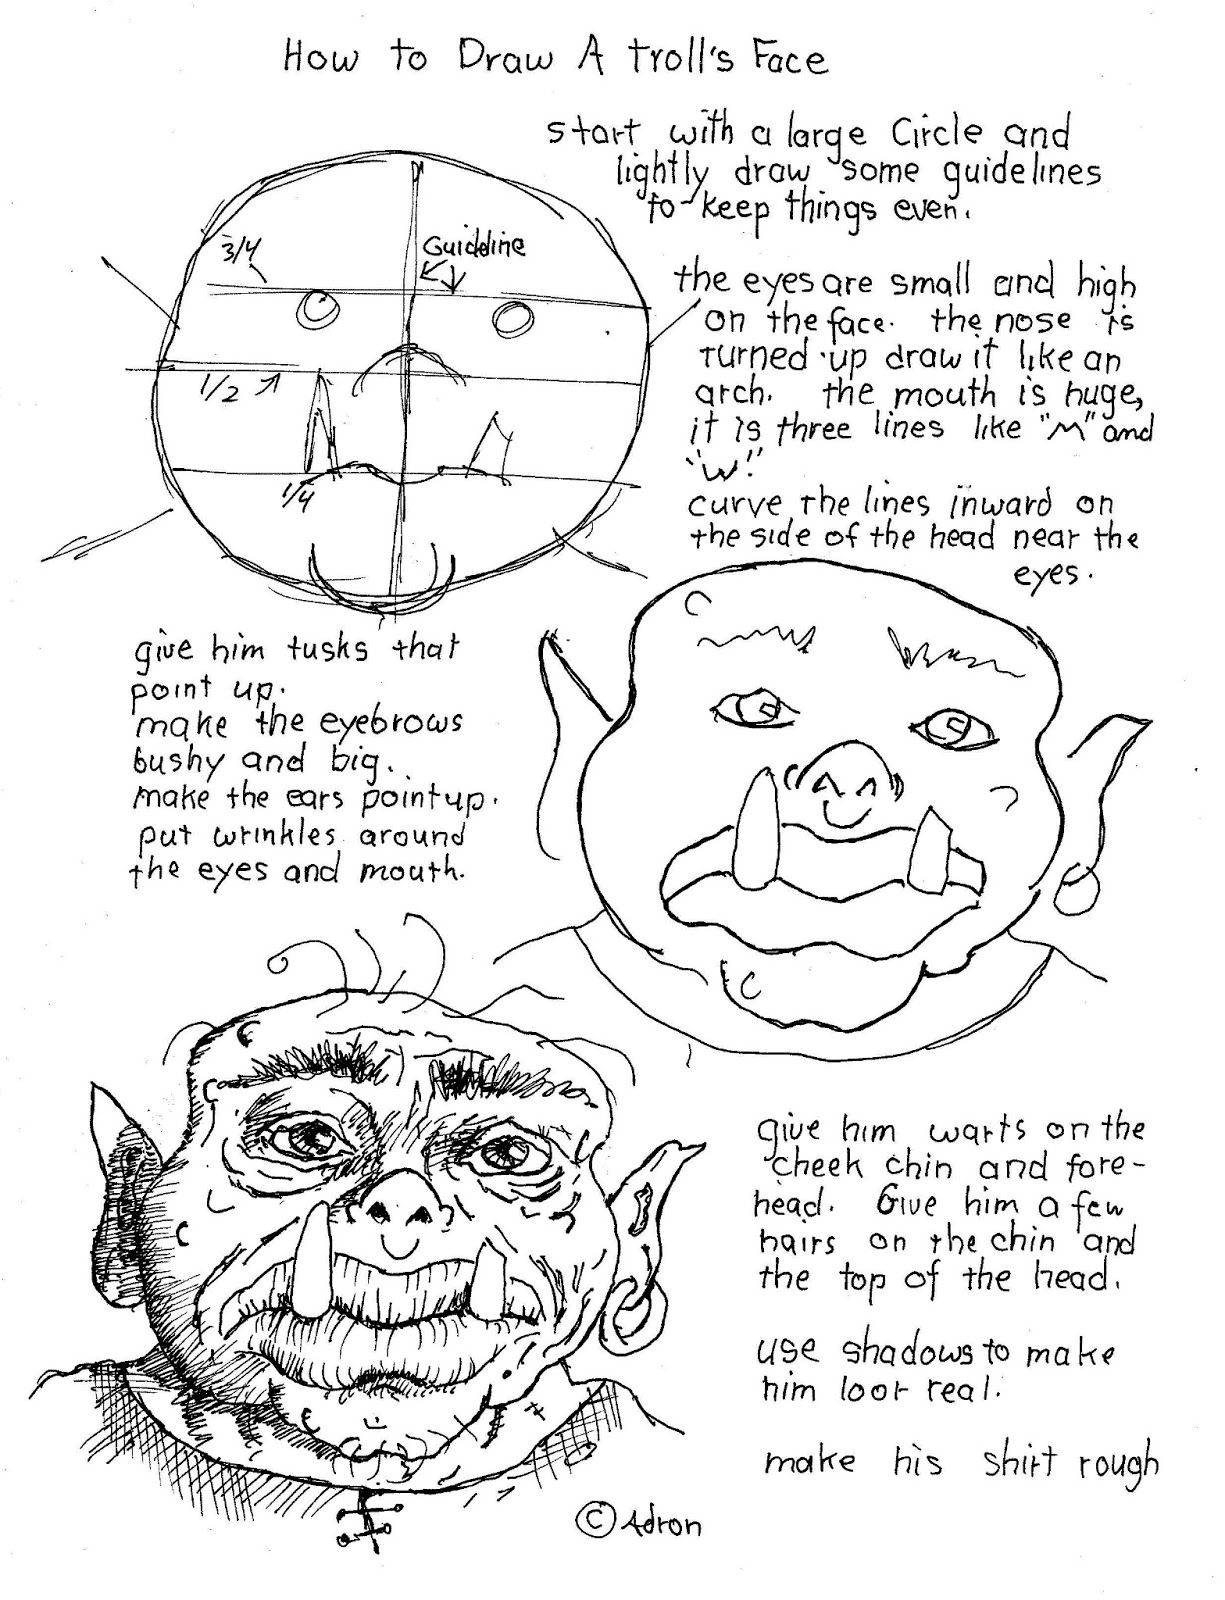 How To Draw Worksheets For The Young Artist How To Draw A Troll S Face Worksheet